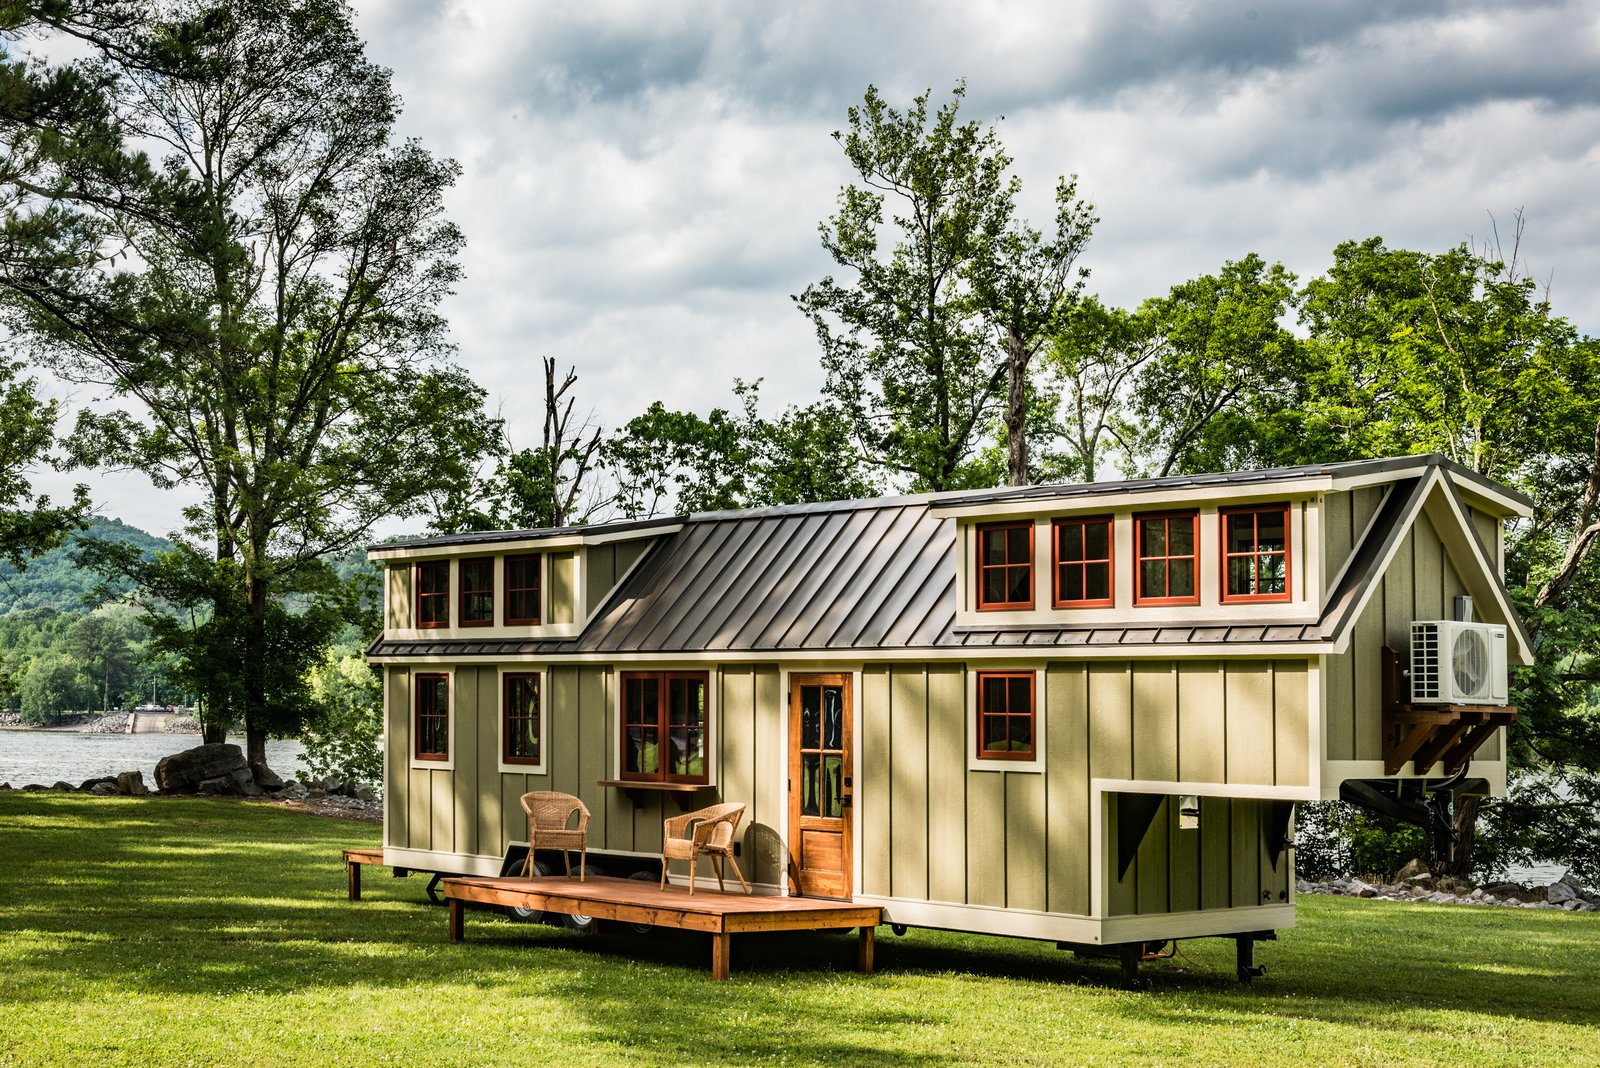 Based in Guntersville, Alabama, Timbercraft Tiny Homes promotes minimalism, deliberate and mindful living, and sustainability. Its five available models can be customized for individual needs and budget restraints. The Denali, pictured above, ranges from 37 to 41 feet long, and features a bedroom that can accommodate a king bed. Choose a bathtub or a tile shower for the bathroom, and enjoy a fully equipped kitchen with butcher block counters. The price runs from $94,000 to $104,000 for the standard model; additional options will cost upwards of $120,000.  Photo 2 of 13 in 12 Tiny House Companies That Can Make Your Micro-Living Dreams Come True